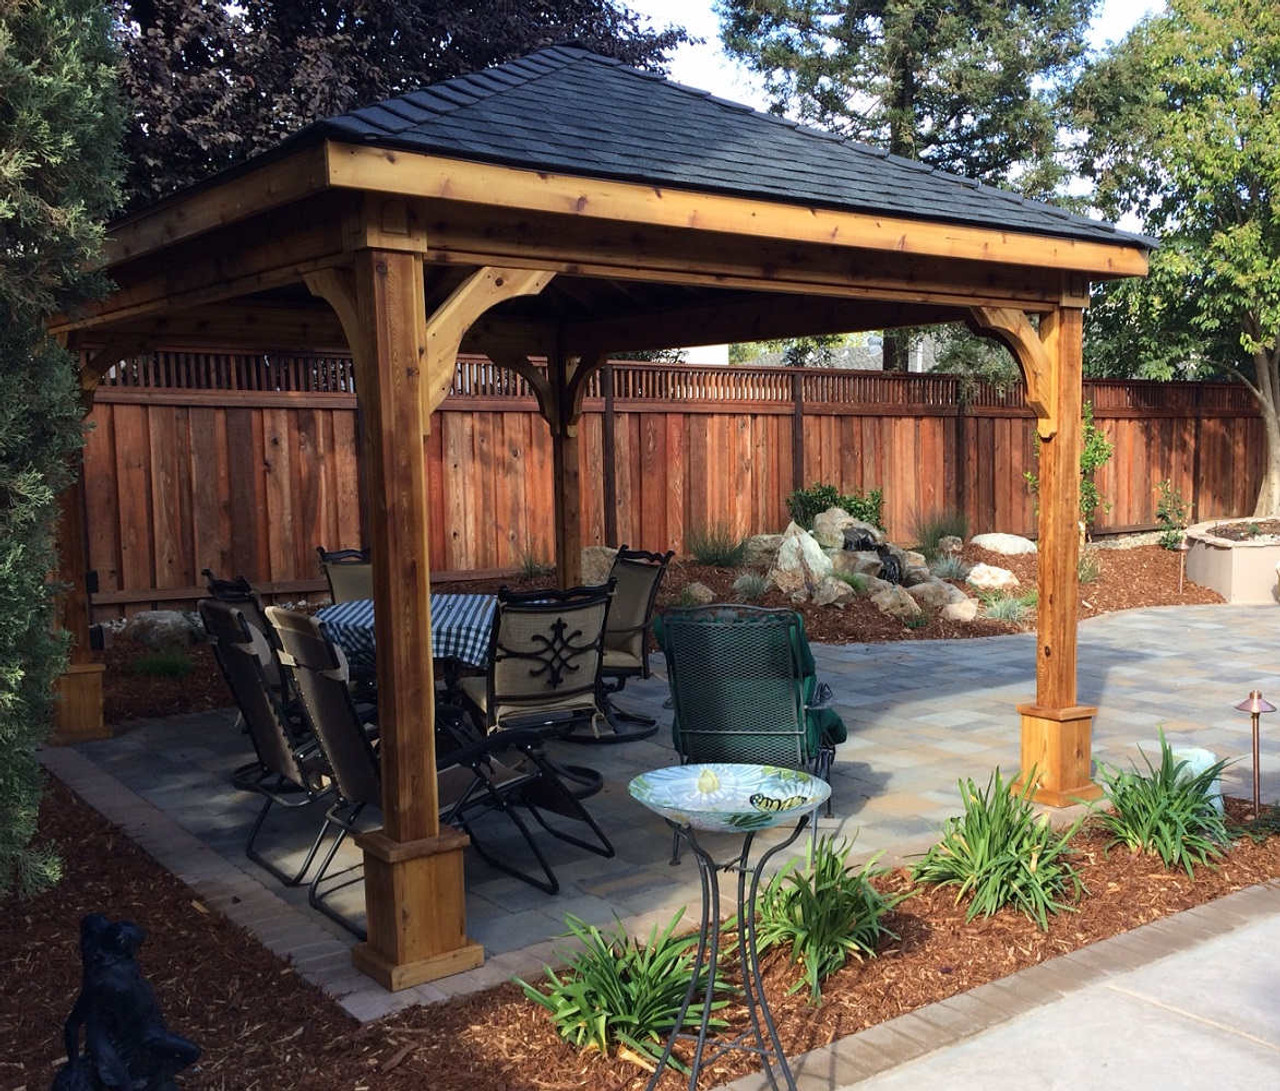 11x15 Traditional (Hip) Roof Cedar Pavilion Kit, Davis, CA